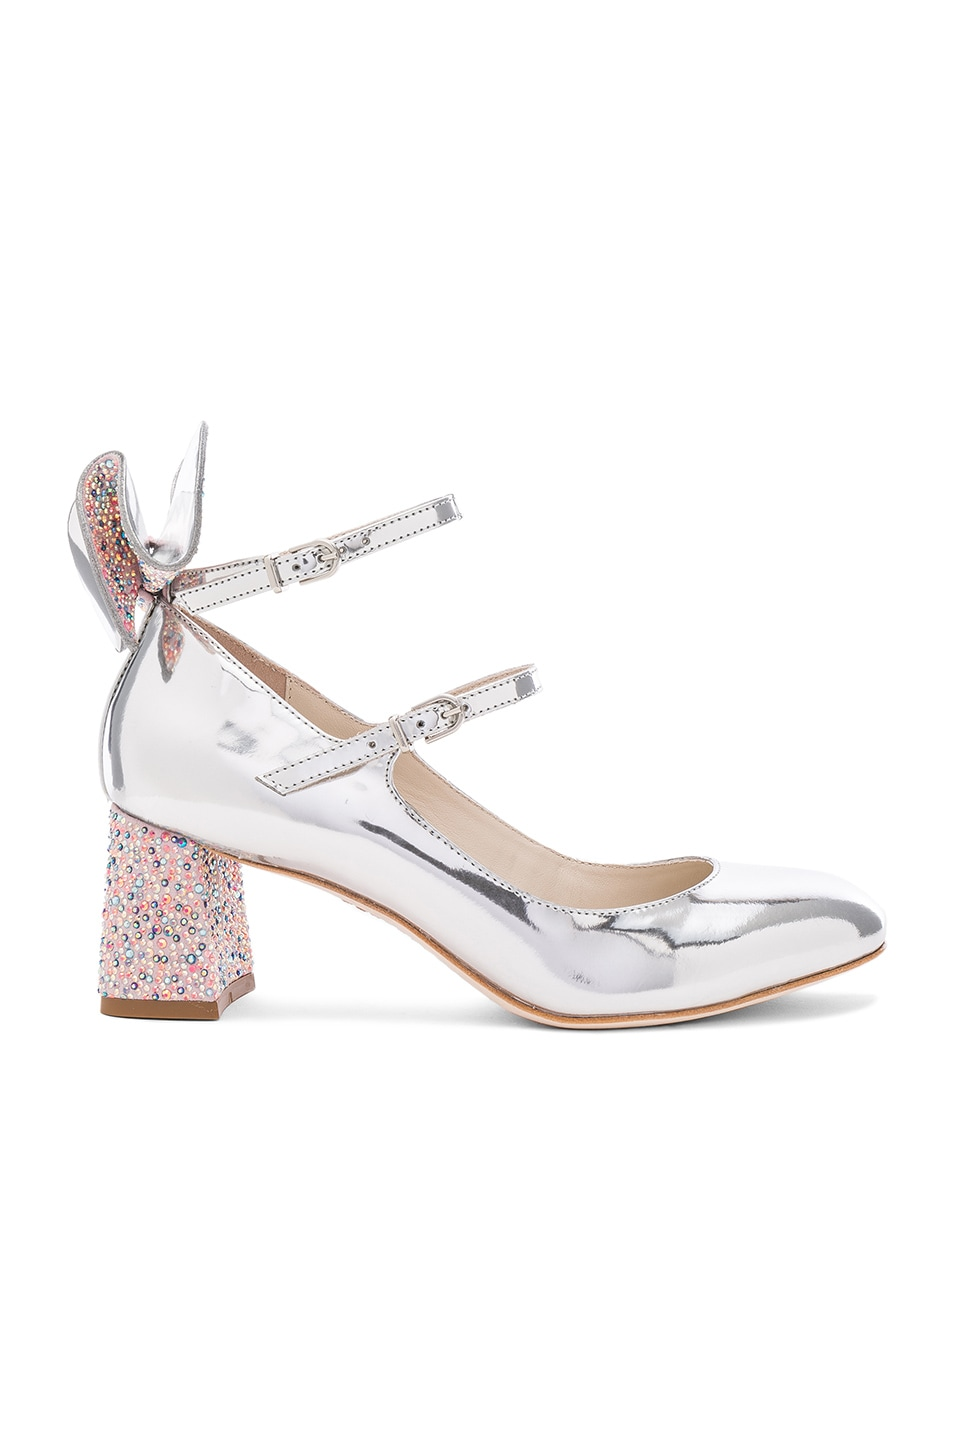 Image 1 of Sophia Webster Leather Lilia Mid Mary Jane Heels in Silver